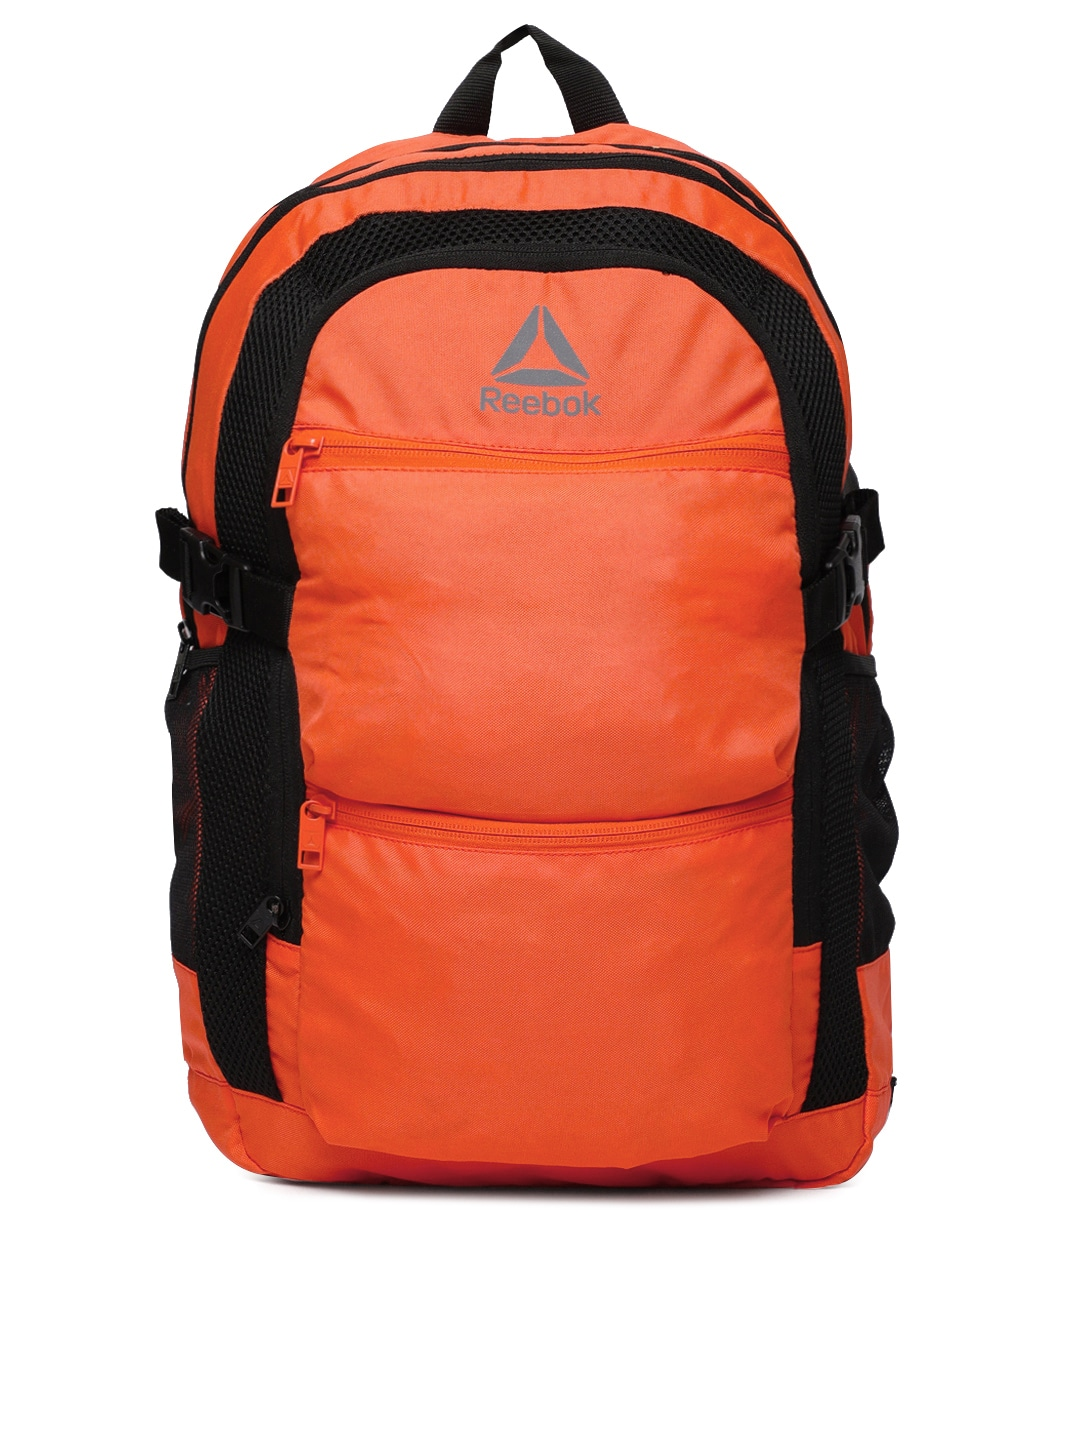 70c23a305e Reebok Bags - Buy Reebok Bag Online in India at Myntra